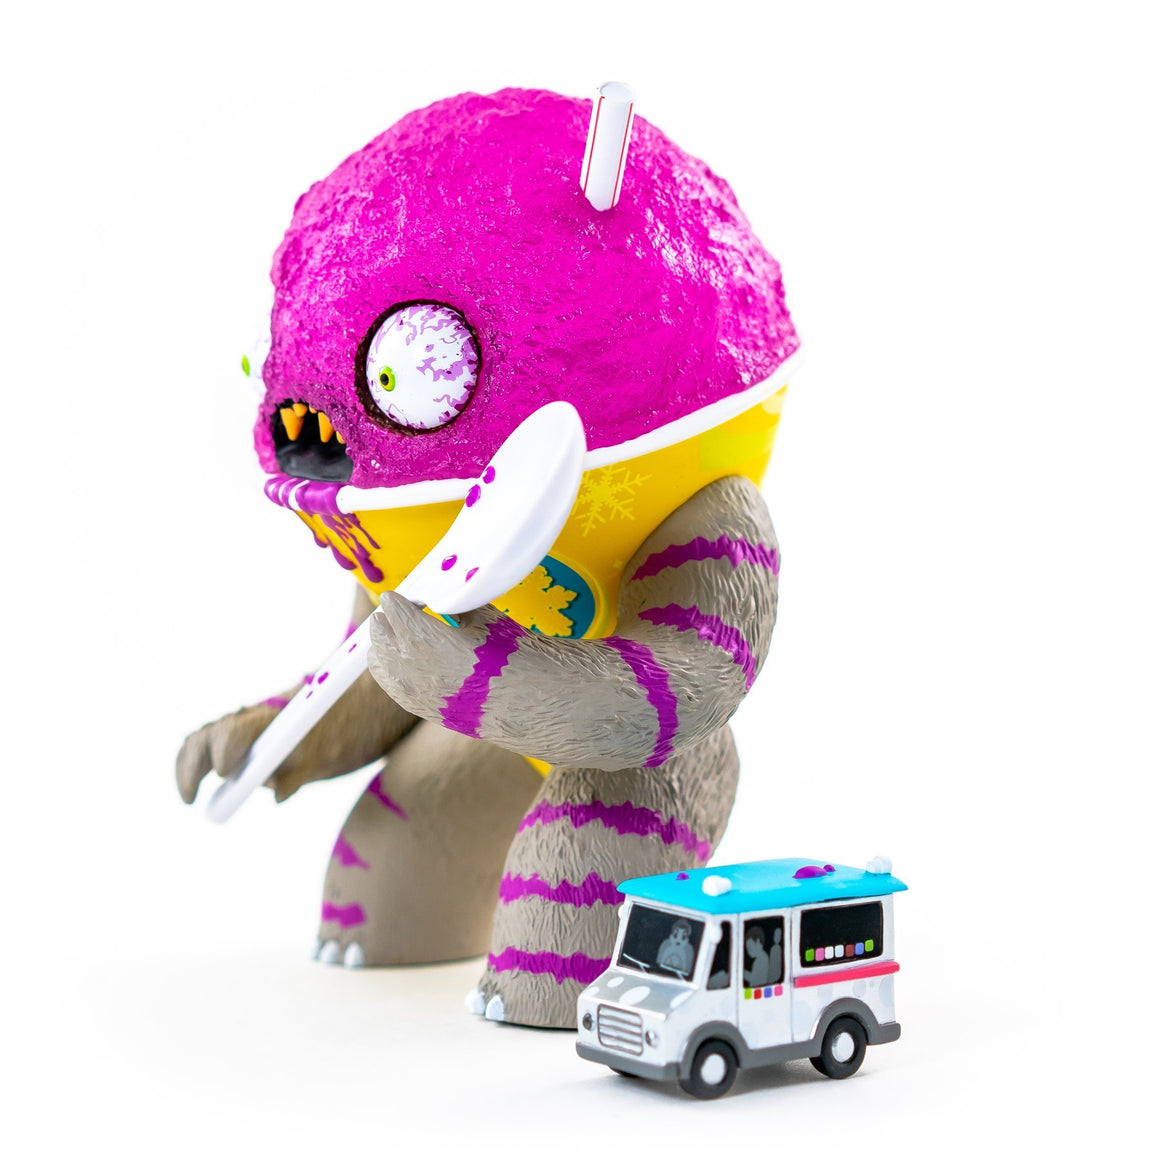 Abominable Snow Cone 2nd Serving - Grape Edition by Jason Limon x Martian Toys